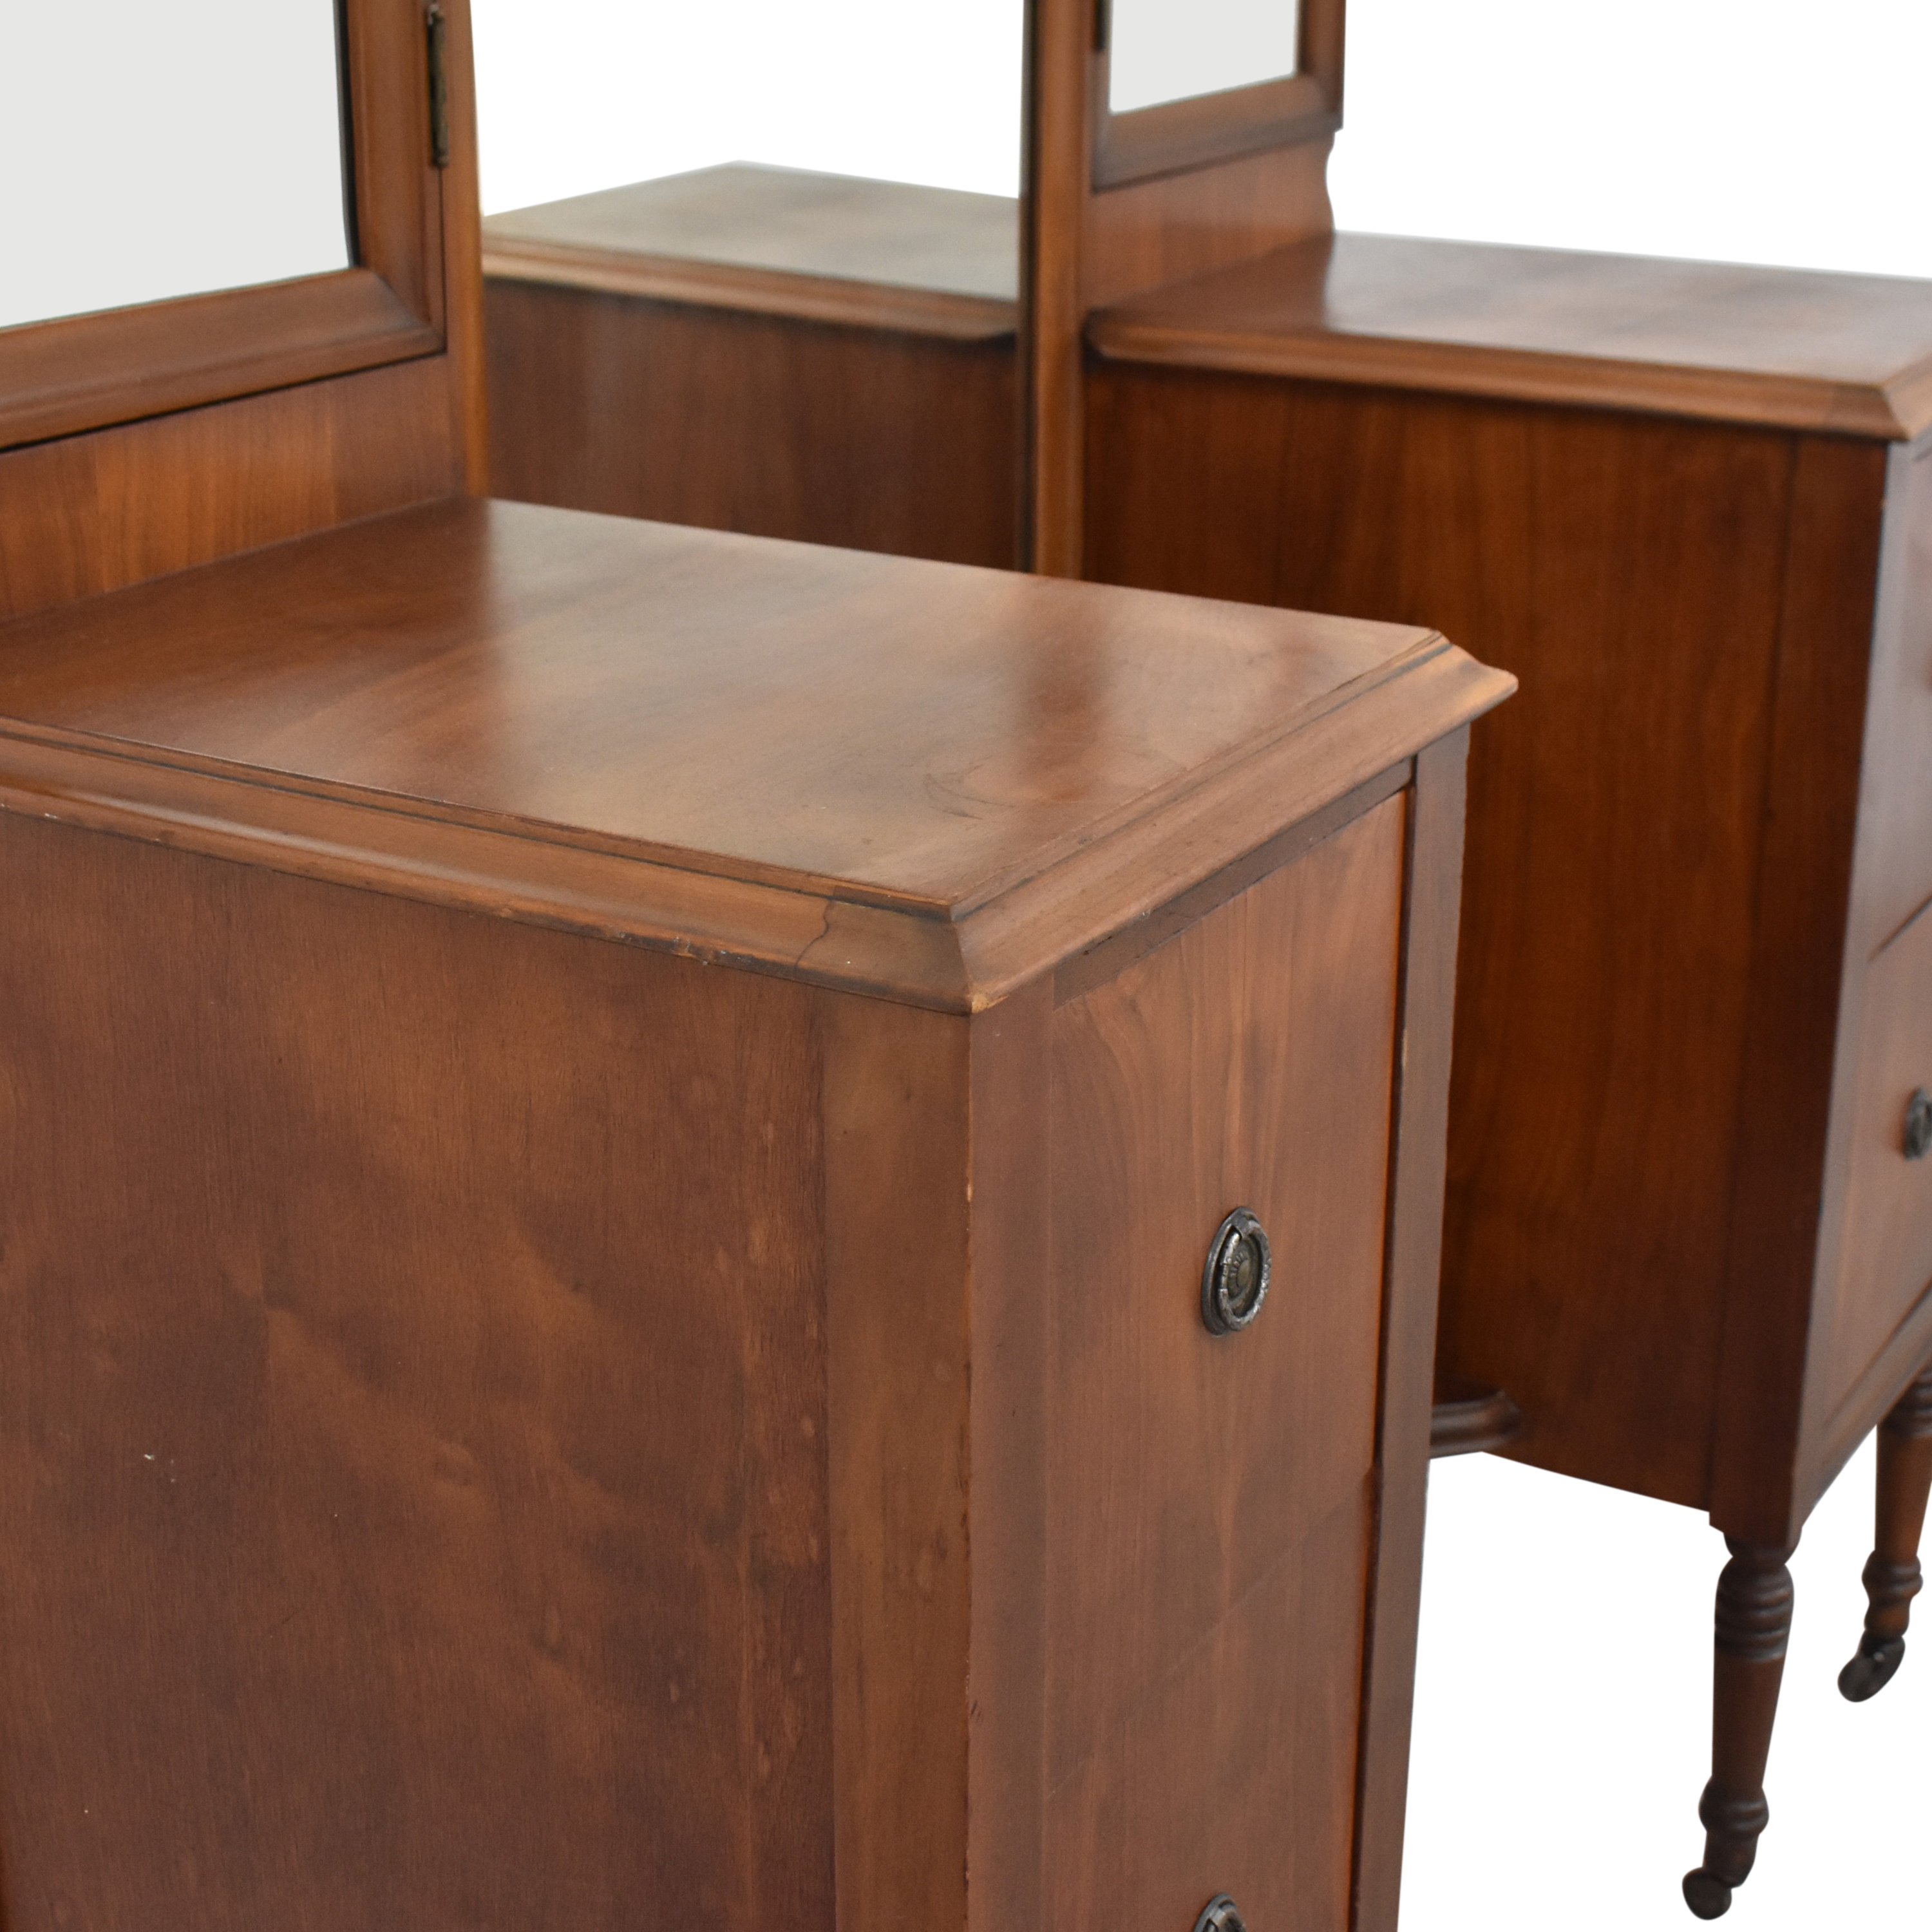 Star Furniture Star Furniture Vintage Vanity with Trifold Mirror coupon